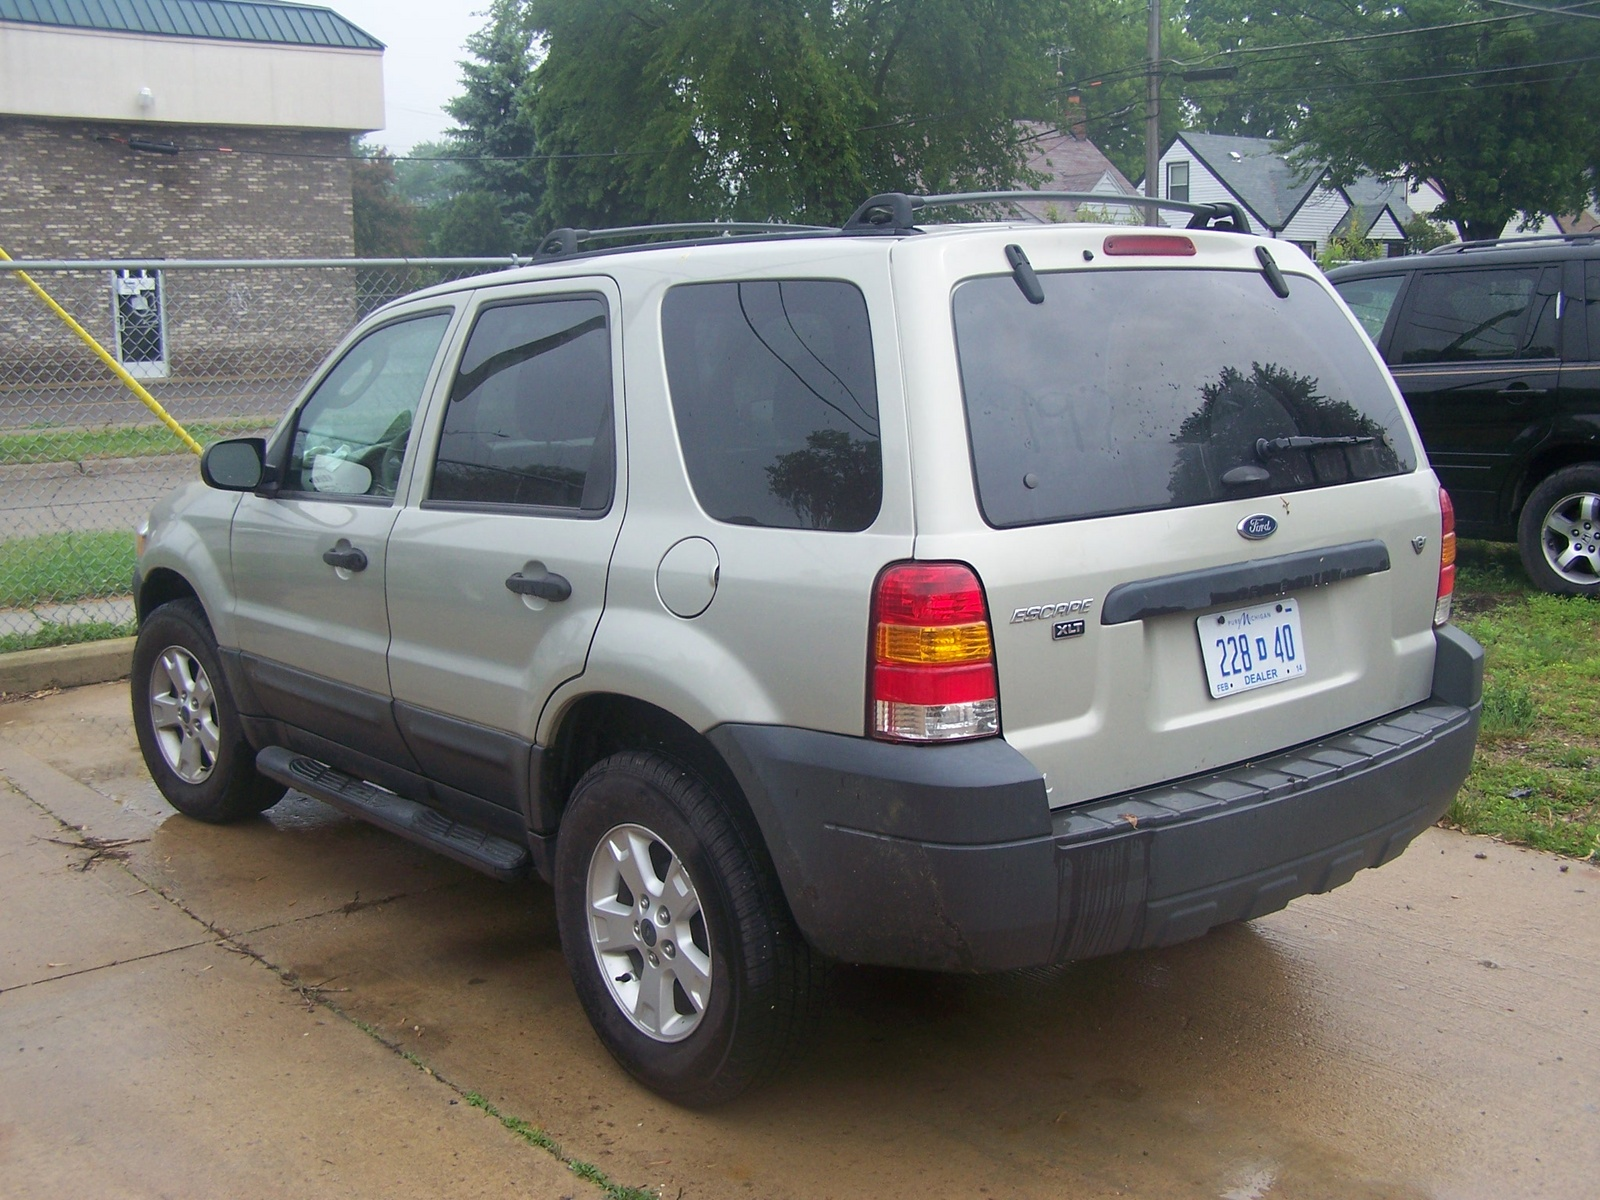 2005 ford escape exterior pictures cargurus for Motor ford escape 2005